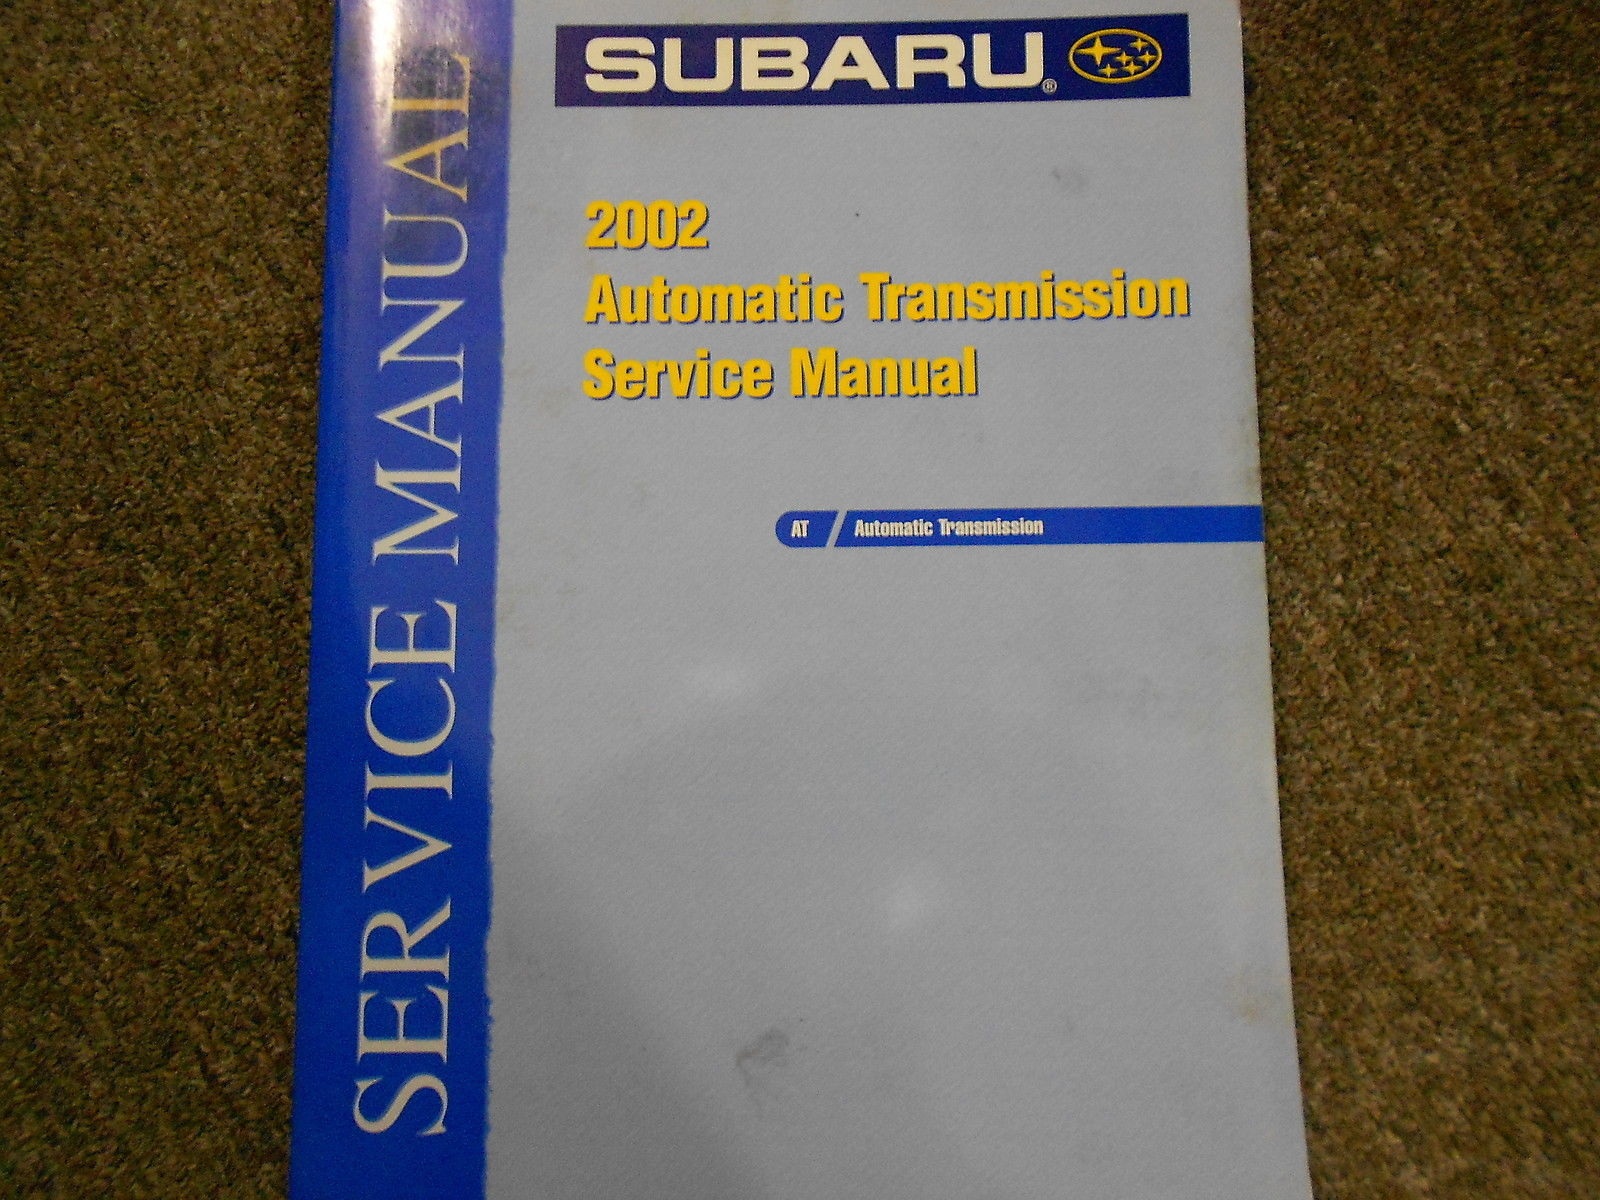 2002 Subaru Automatic Transmission Service Repair Shop Manual FACTORY OEM BOOK